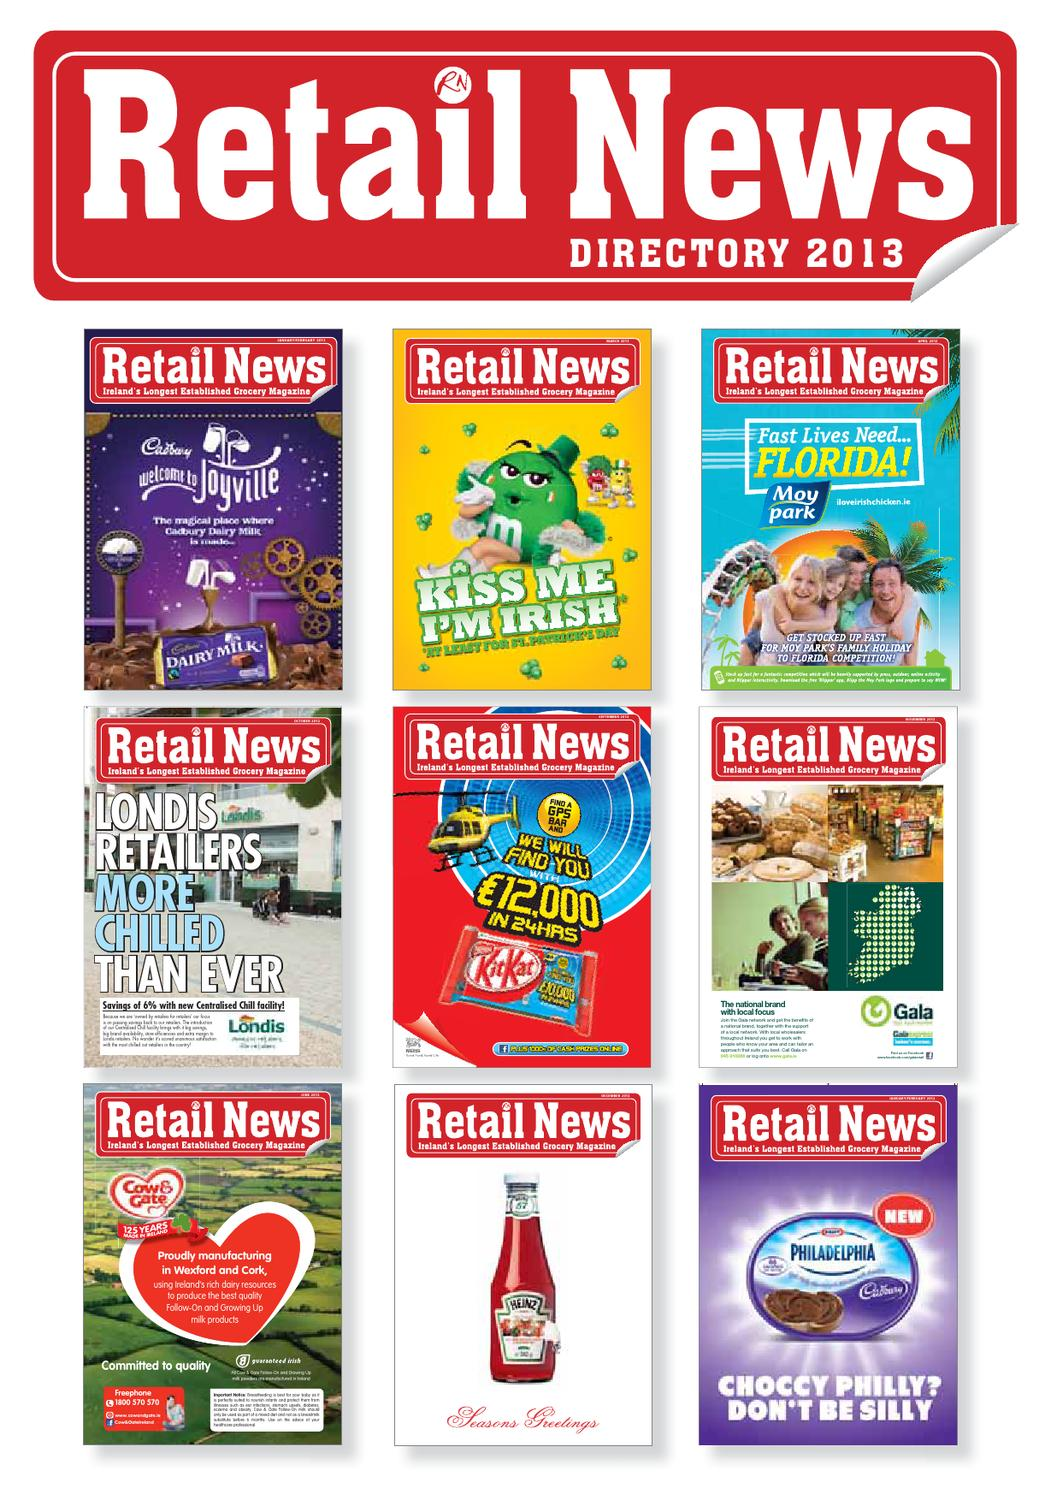 Retail News DIrectory 2013 by Retail News - issuu